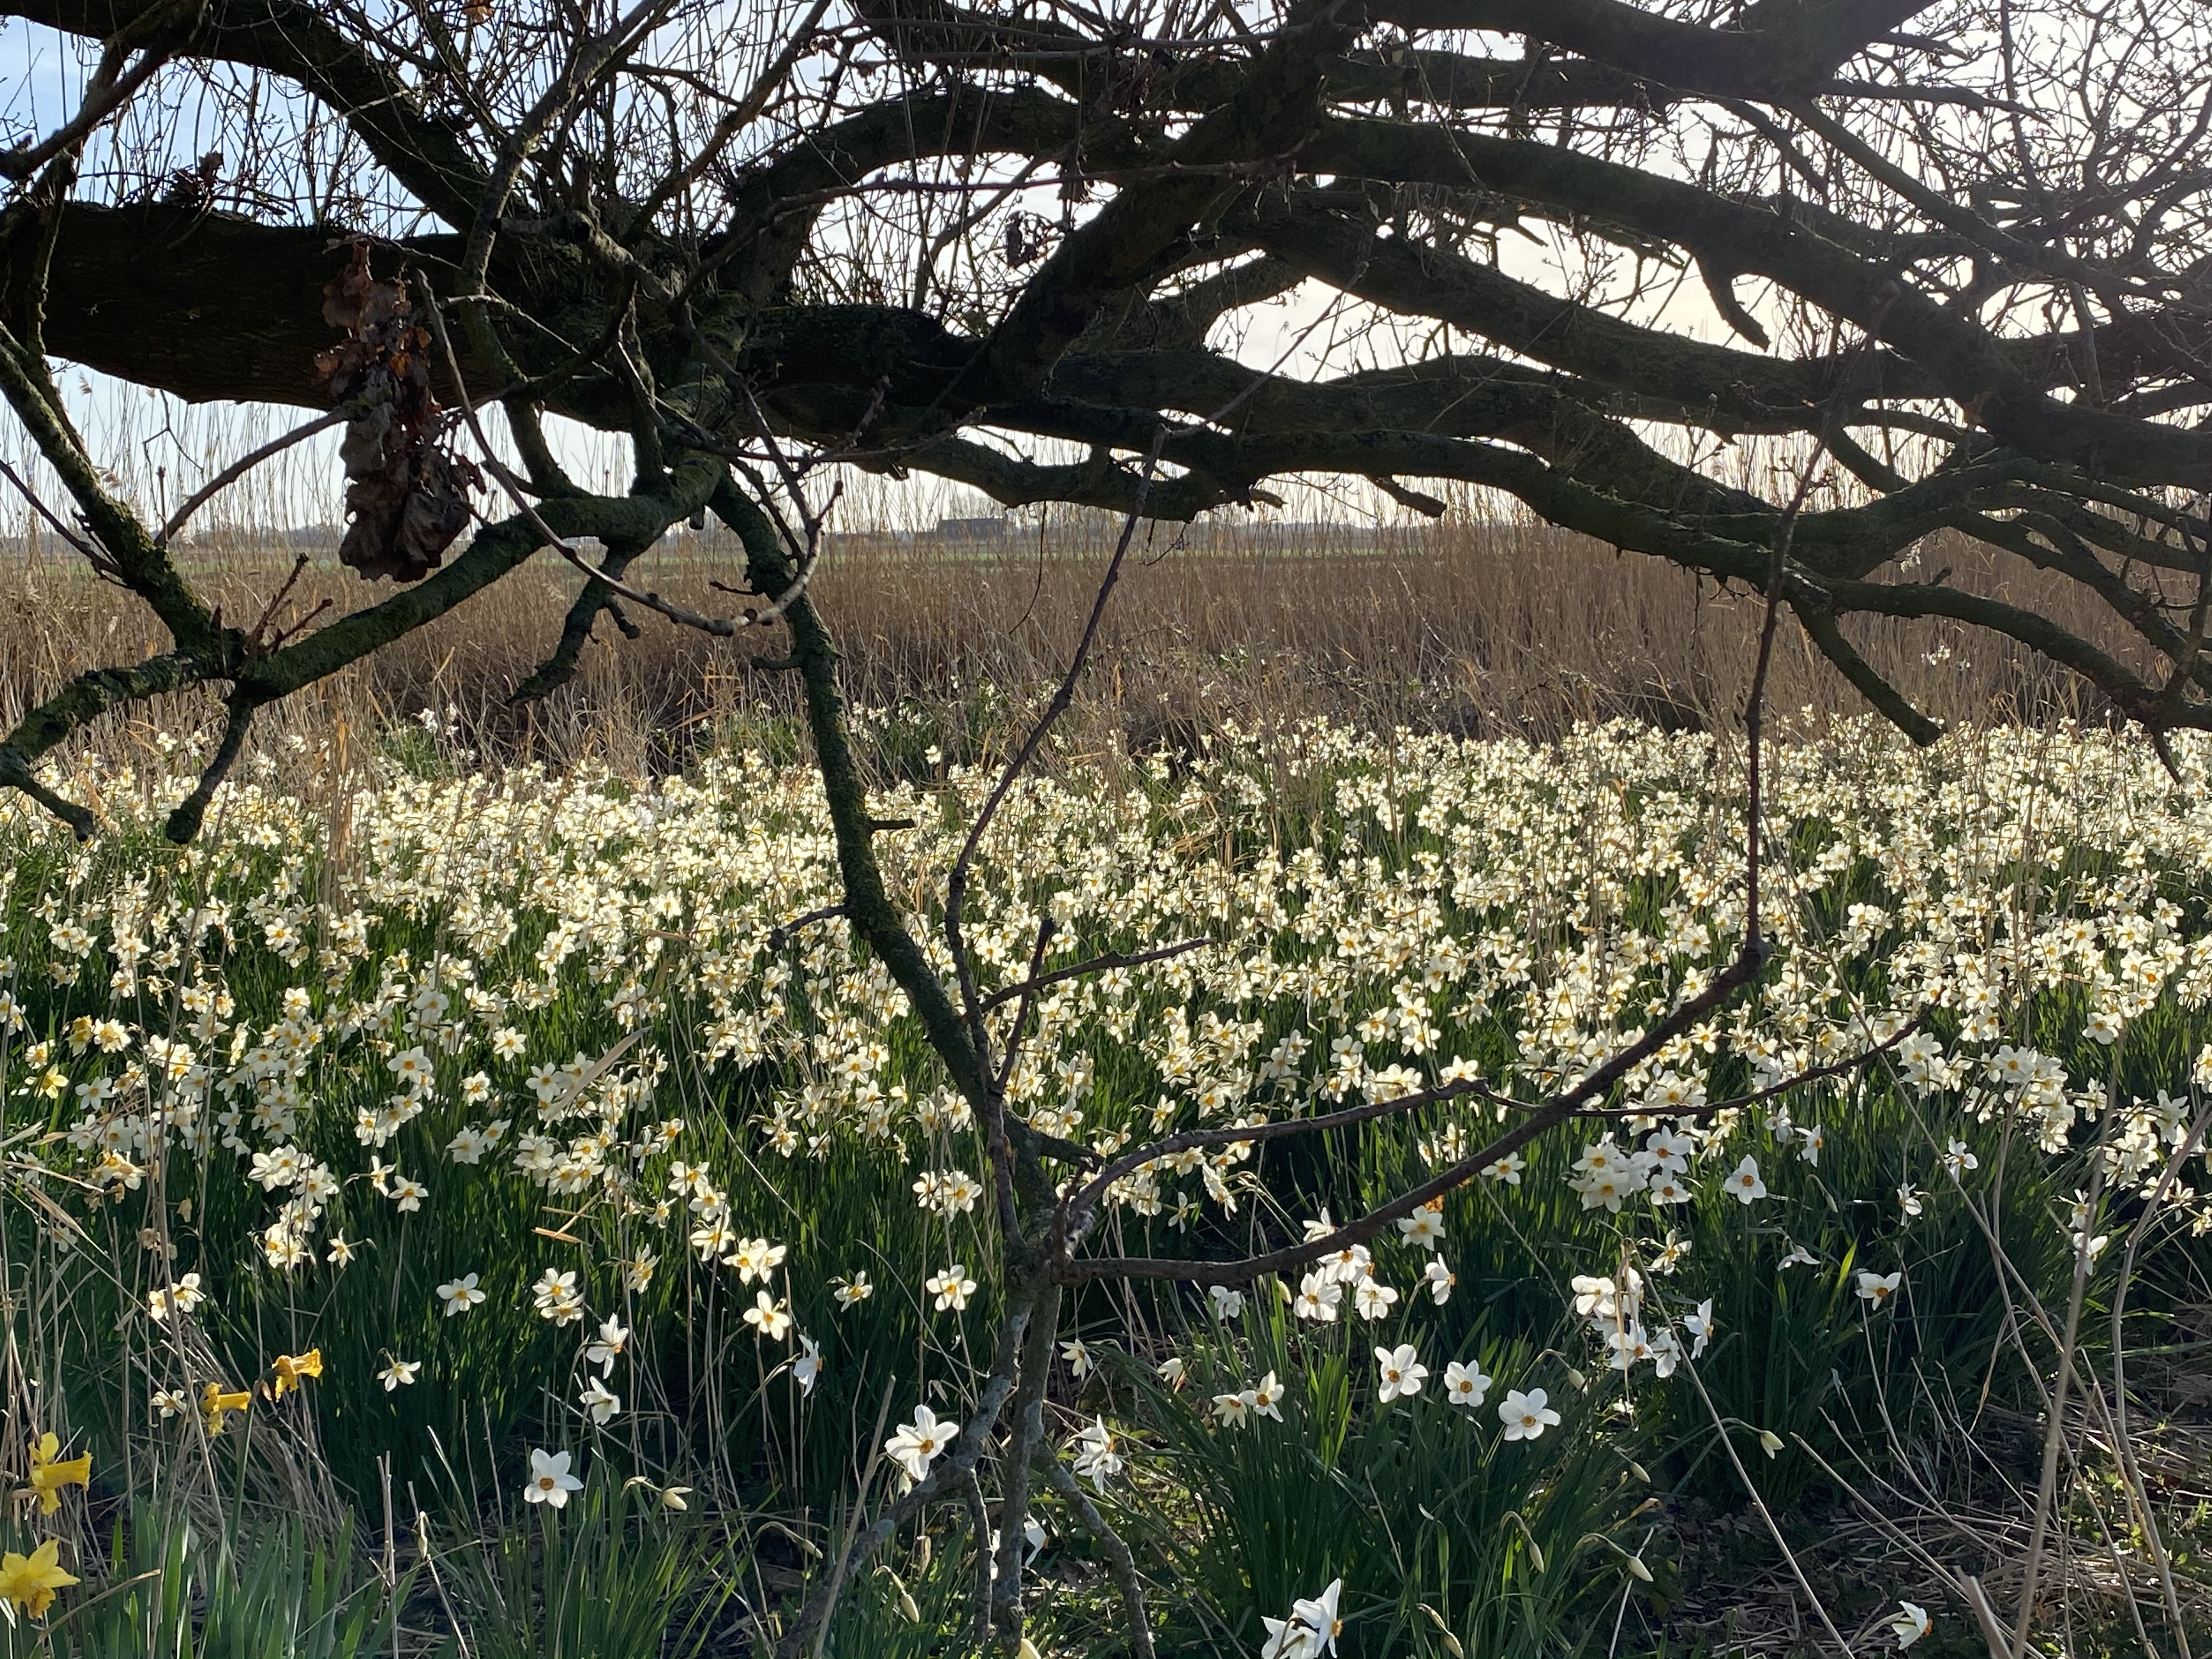 Our 'Willow Field' of Daffodils